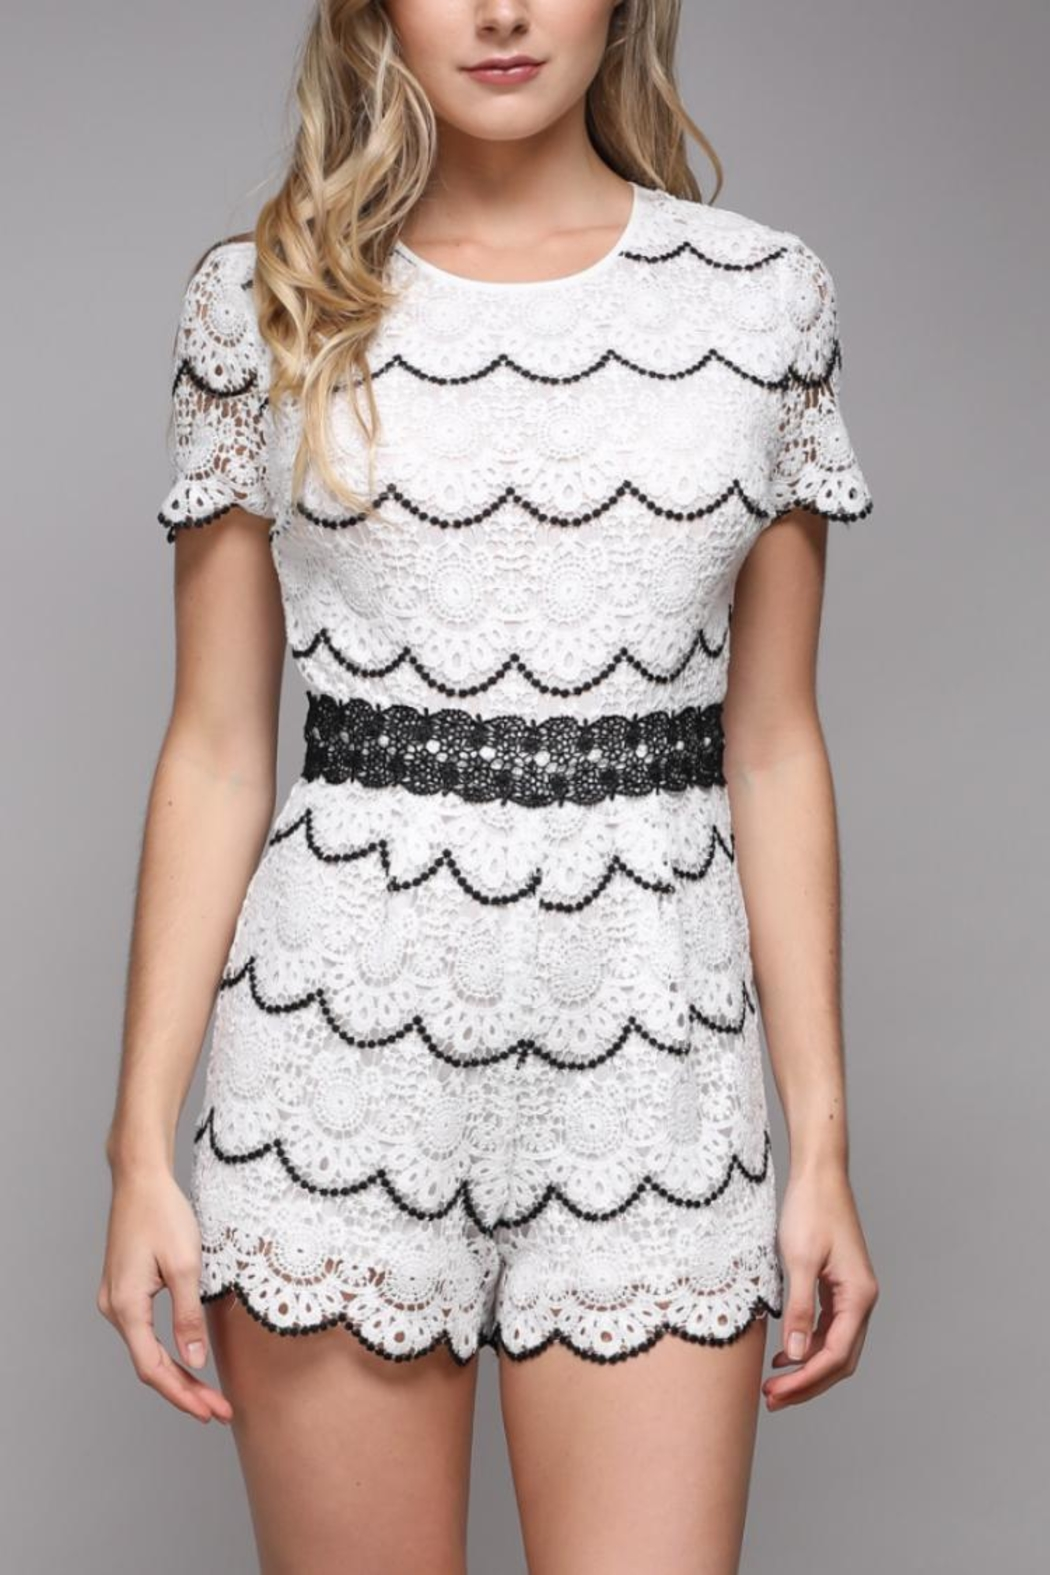 Do & Be Short-Sleeve Lace Romper - Main Image